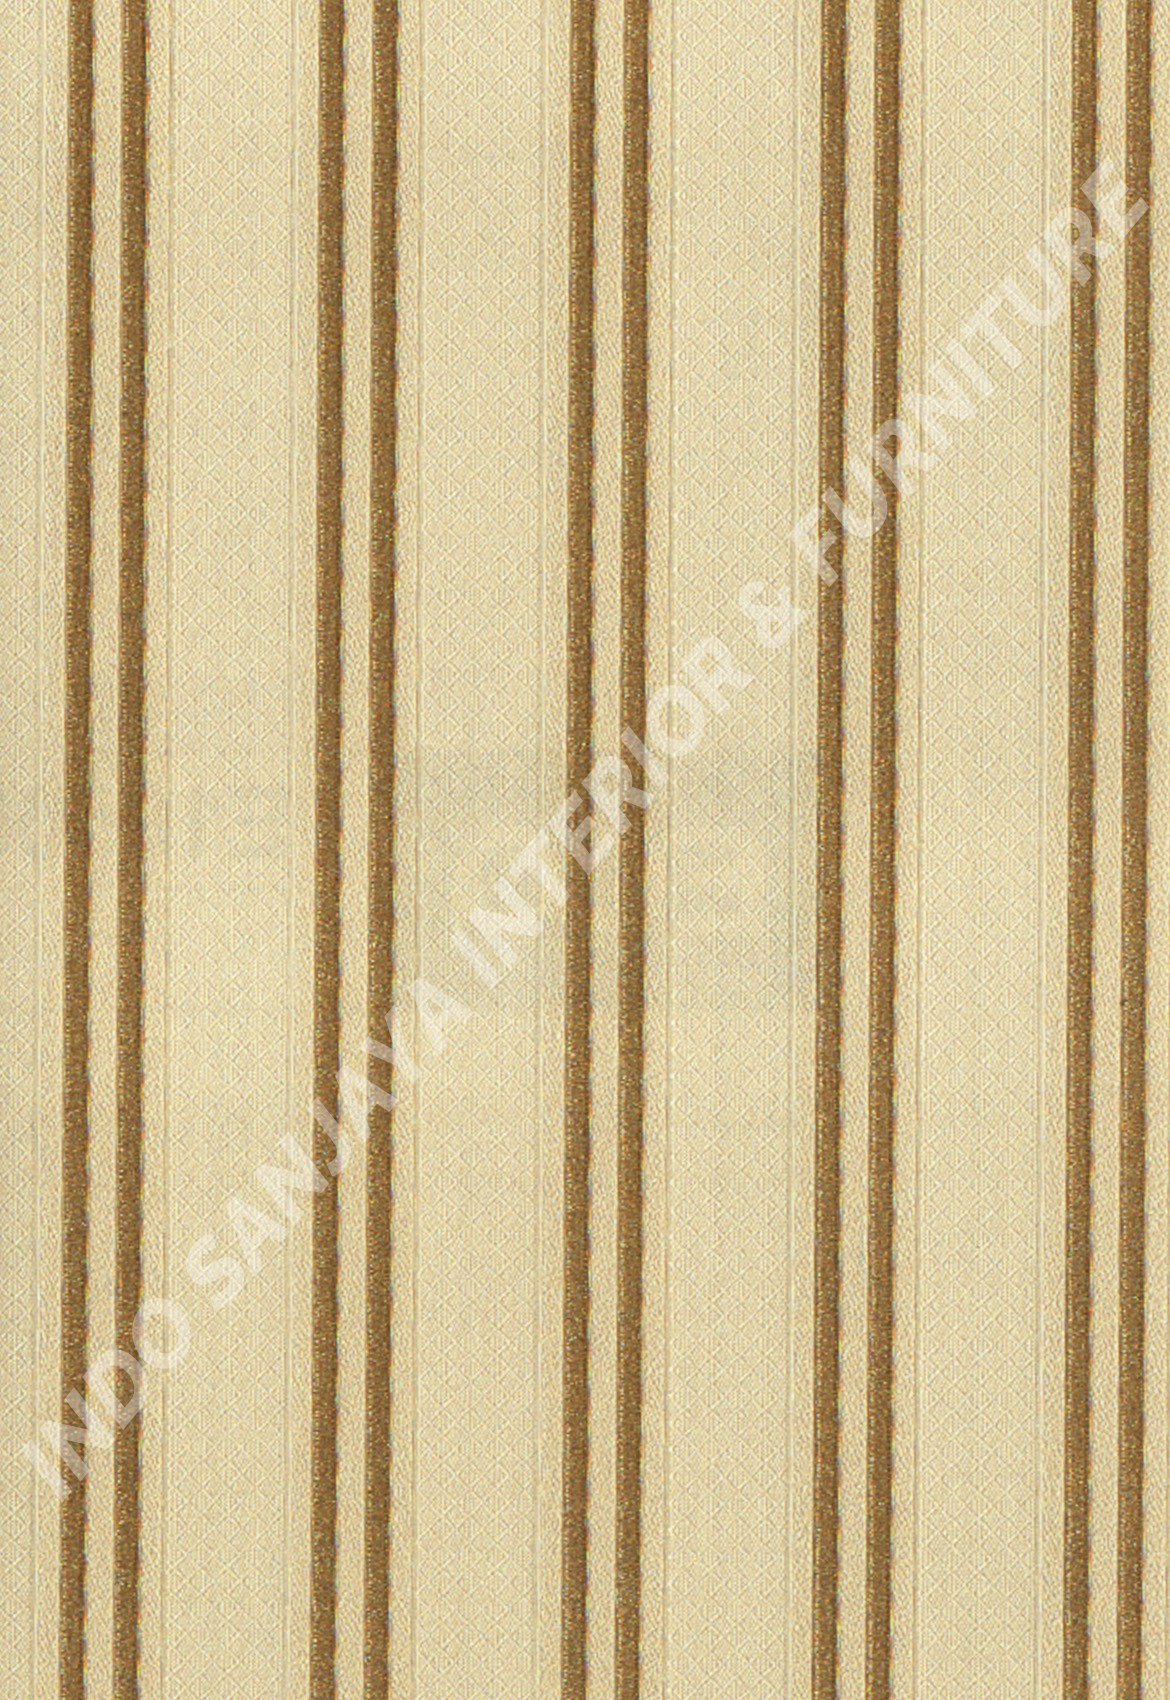 wallpaper   Wallpaper Garis E10506:E10506 corak  warna